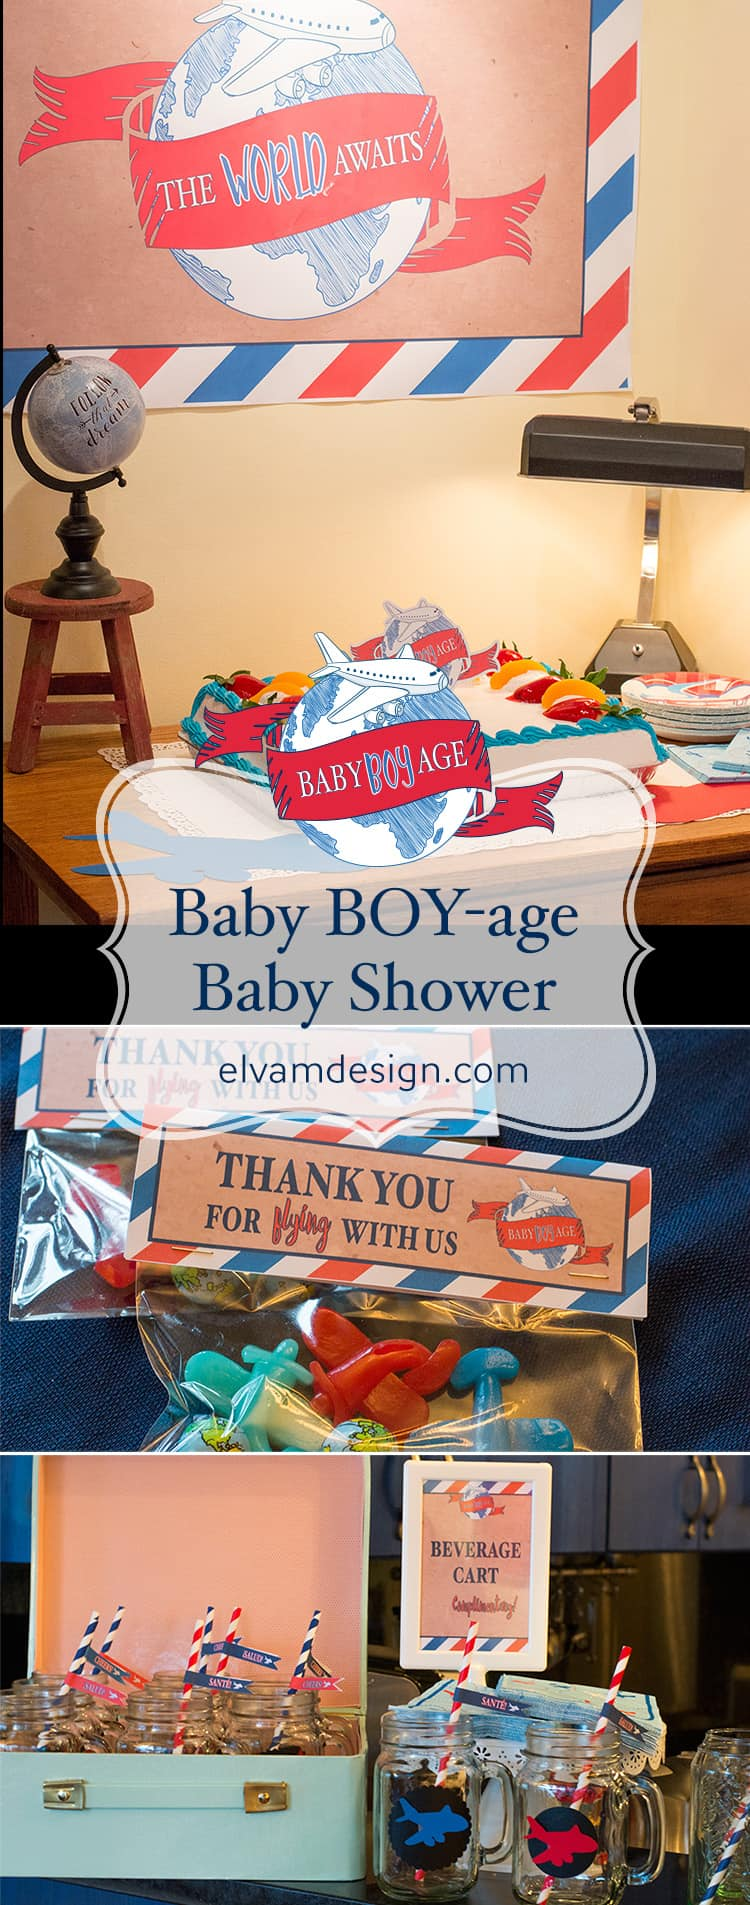 Baby Boyage Travel Theme Shower